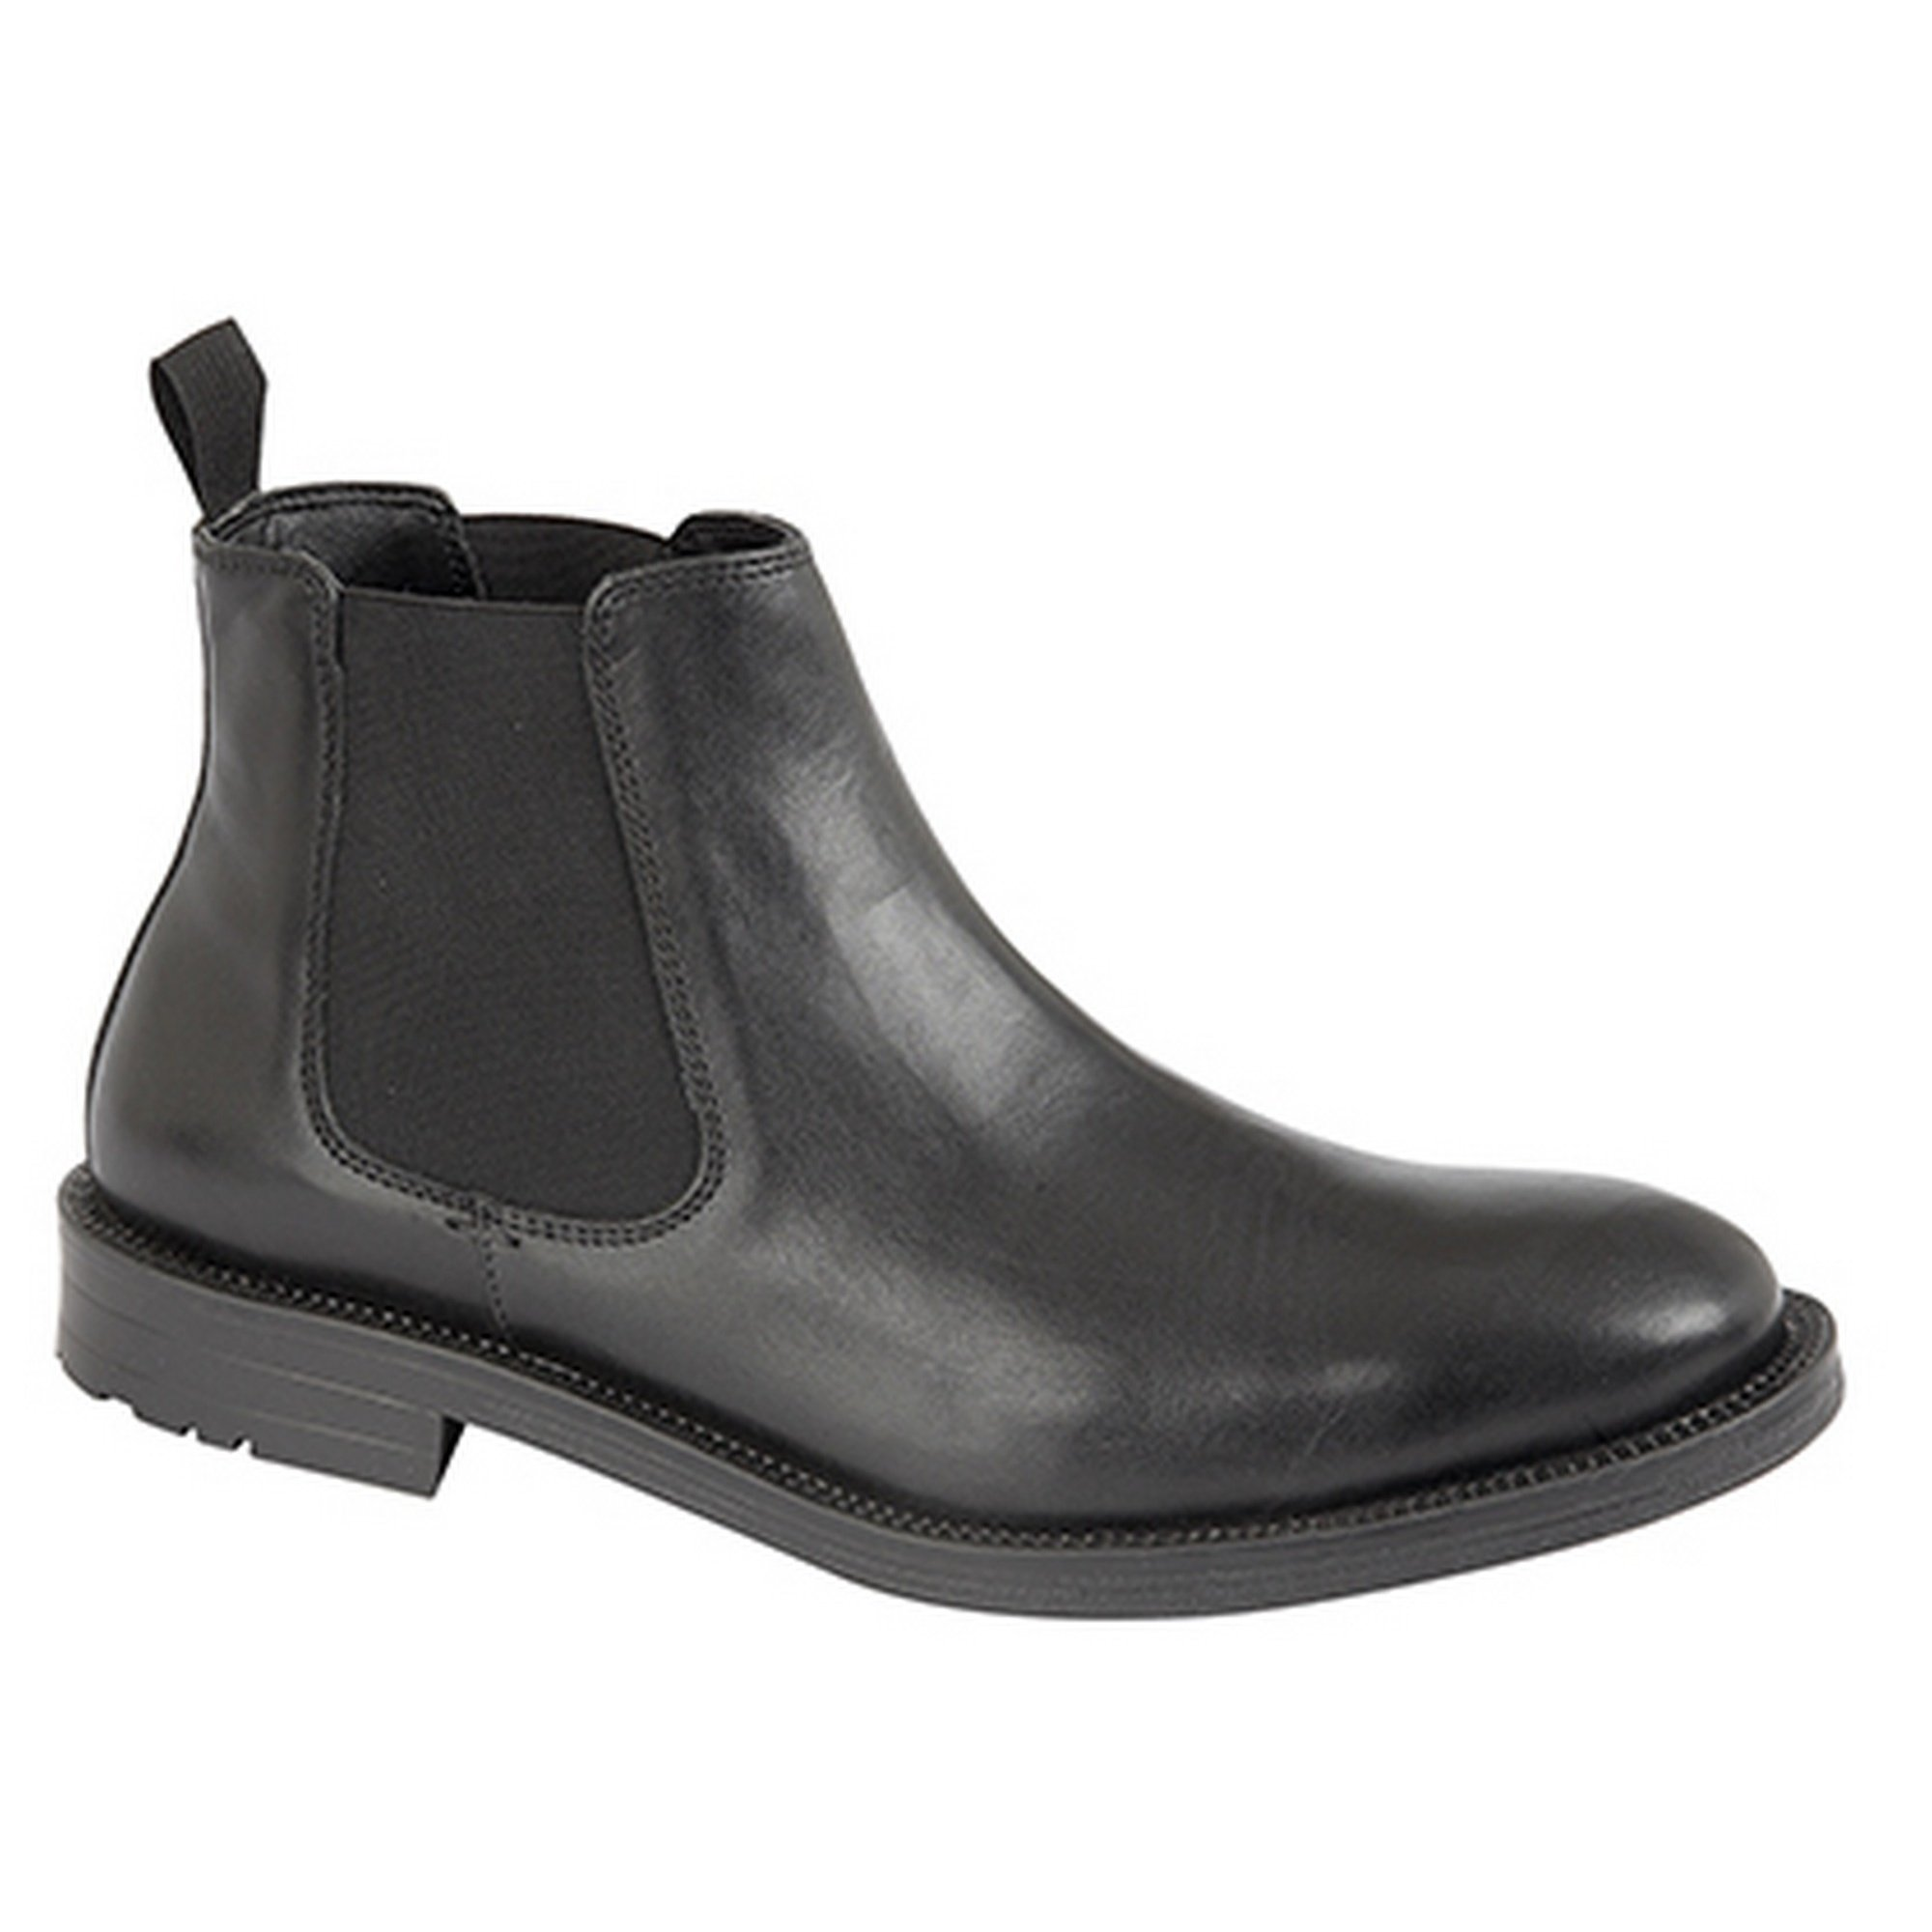 Roamers Mens Twin Gusset Leather Dealer Boots (10 US) (Black) by Roamers